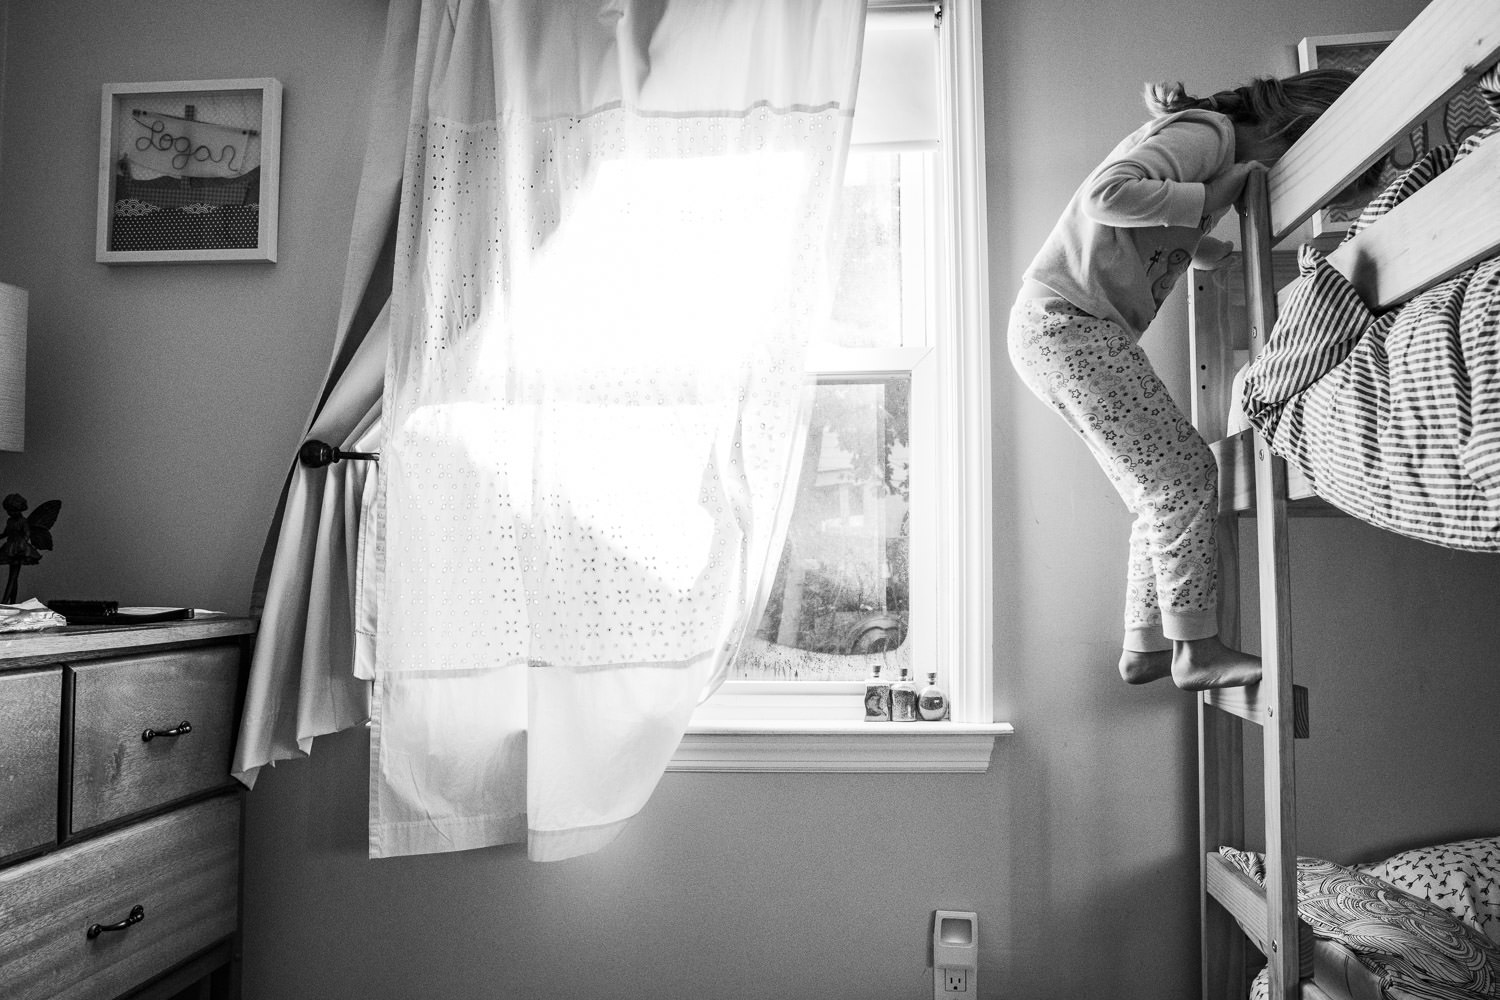 A little girl climbs up the ladder of her bunkbed.